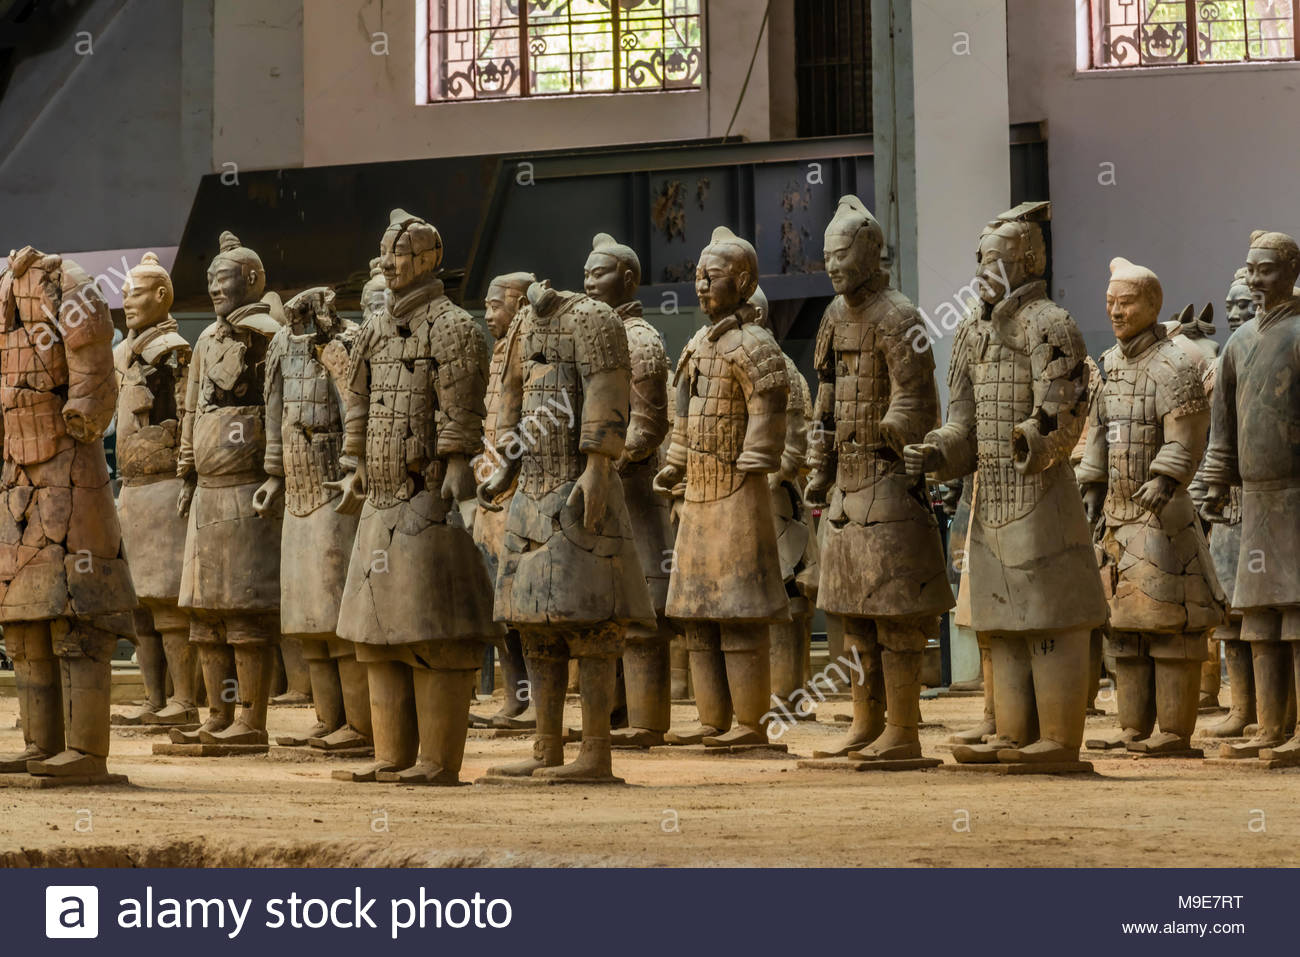 The Terracotta Army was found extensively damaged when discovered in 1974. The warriors have been painstakingly reassembled. Mausoleum of the First Qi Stock Photo